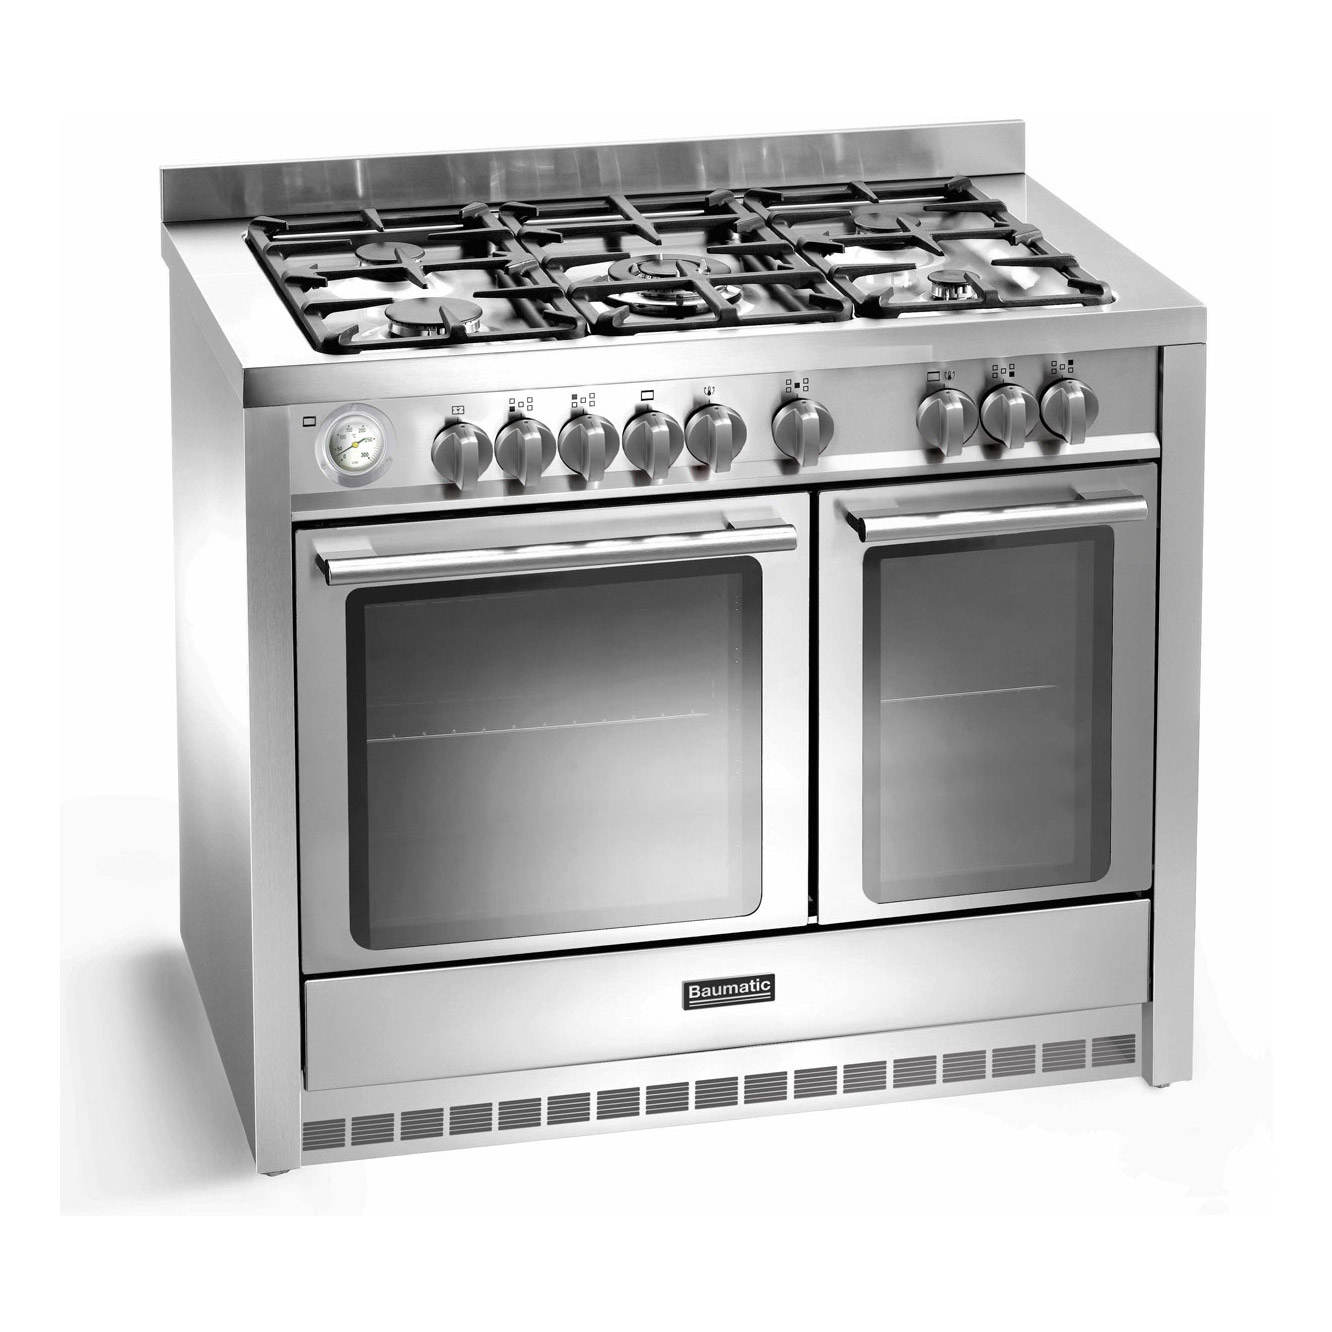 Gas cooker 100cm